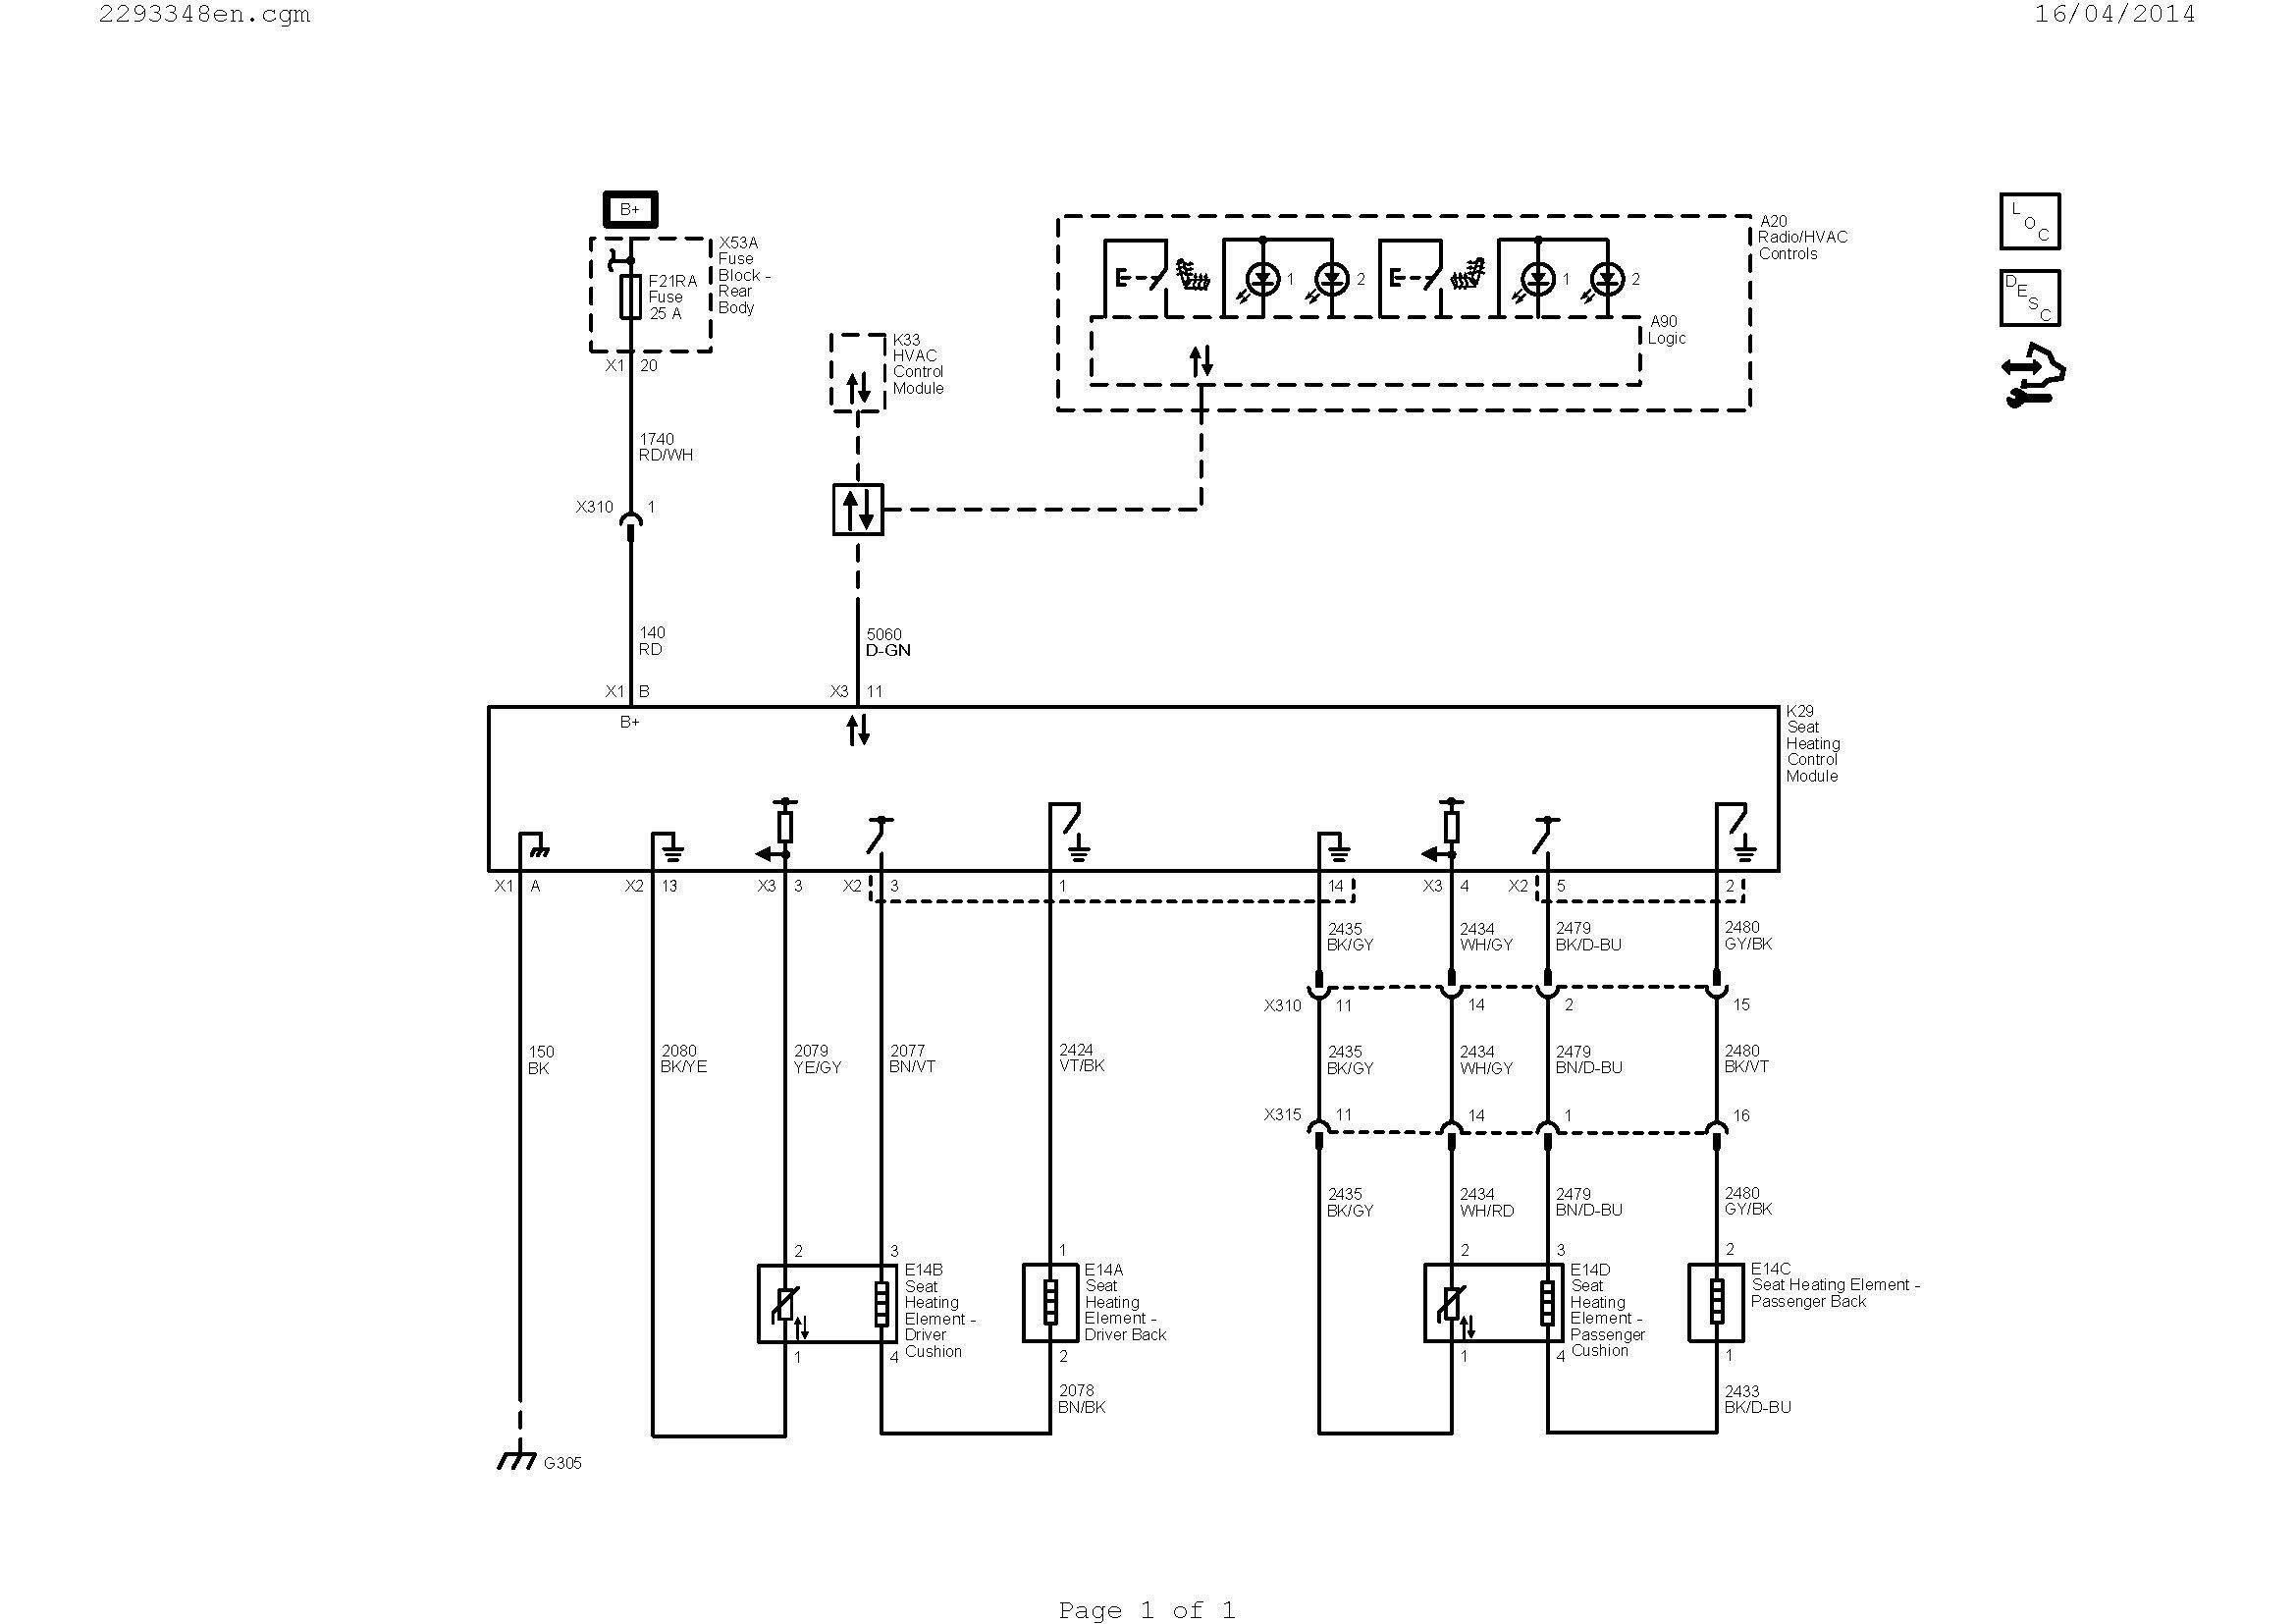 free wiring diagram software Collection-Electrical Wiring Diagram software Free New Wiring Diagram Guitar Fresh Hvac Diagram Best Hvac Diagram 0d 19-i